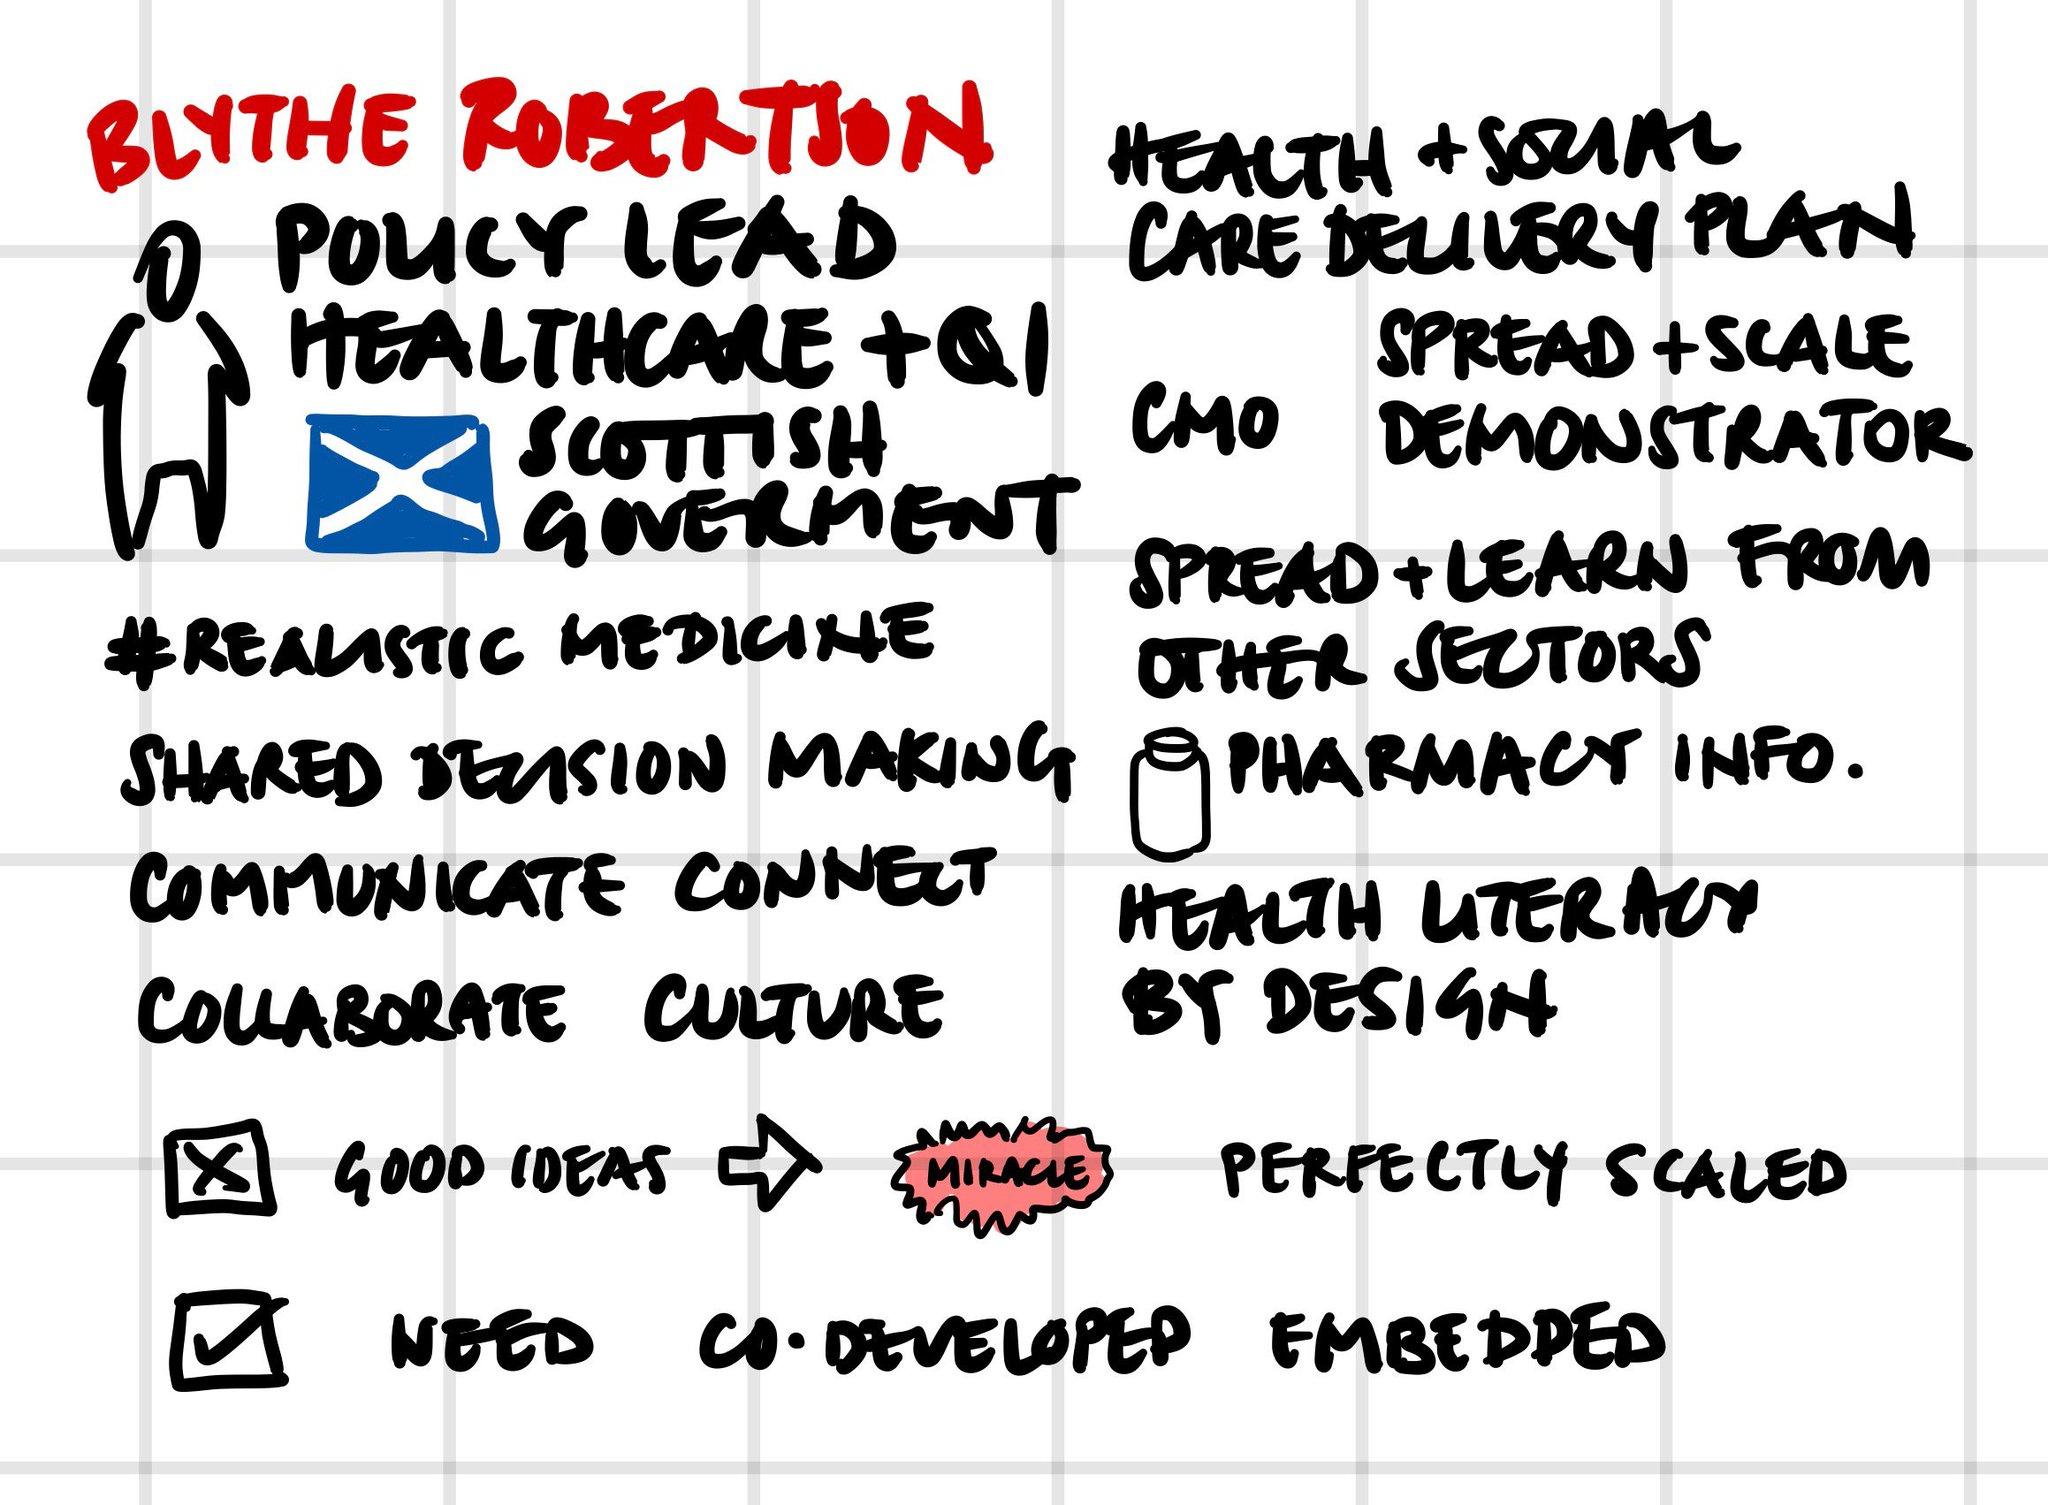 A miracle won't scale health literacy. Engaging users + #codesign will. Blythe Robertson at #healthlitdiscovery #RealisticMedicine #SAtSD https://t.co/WJCuQ5EjhD